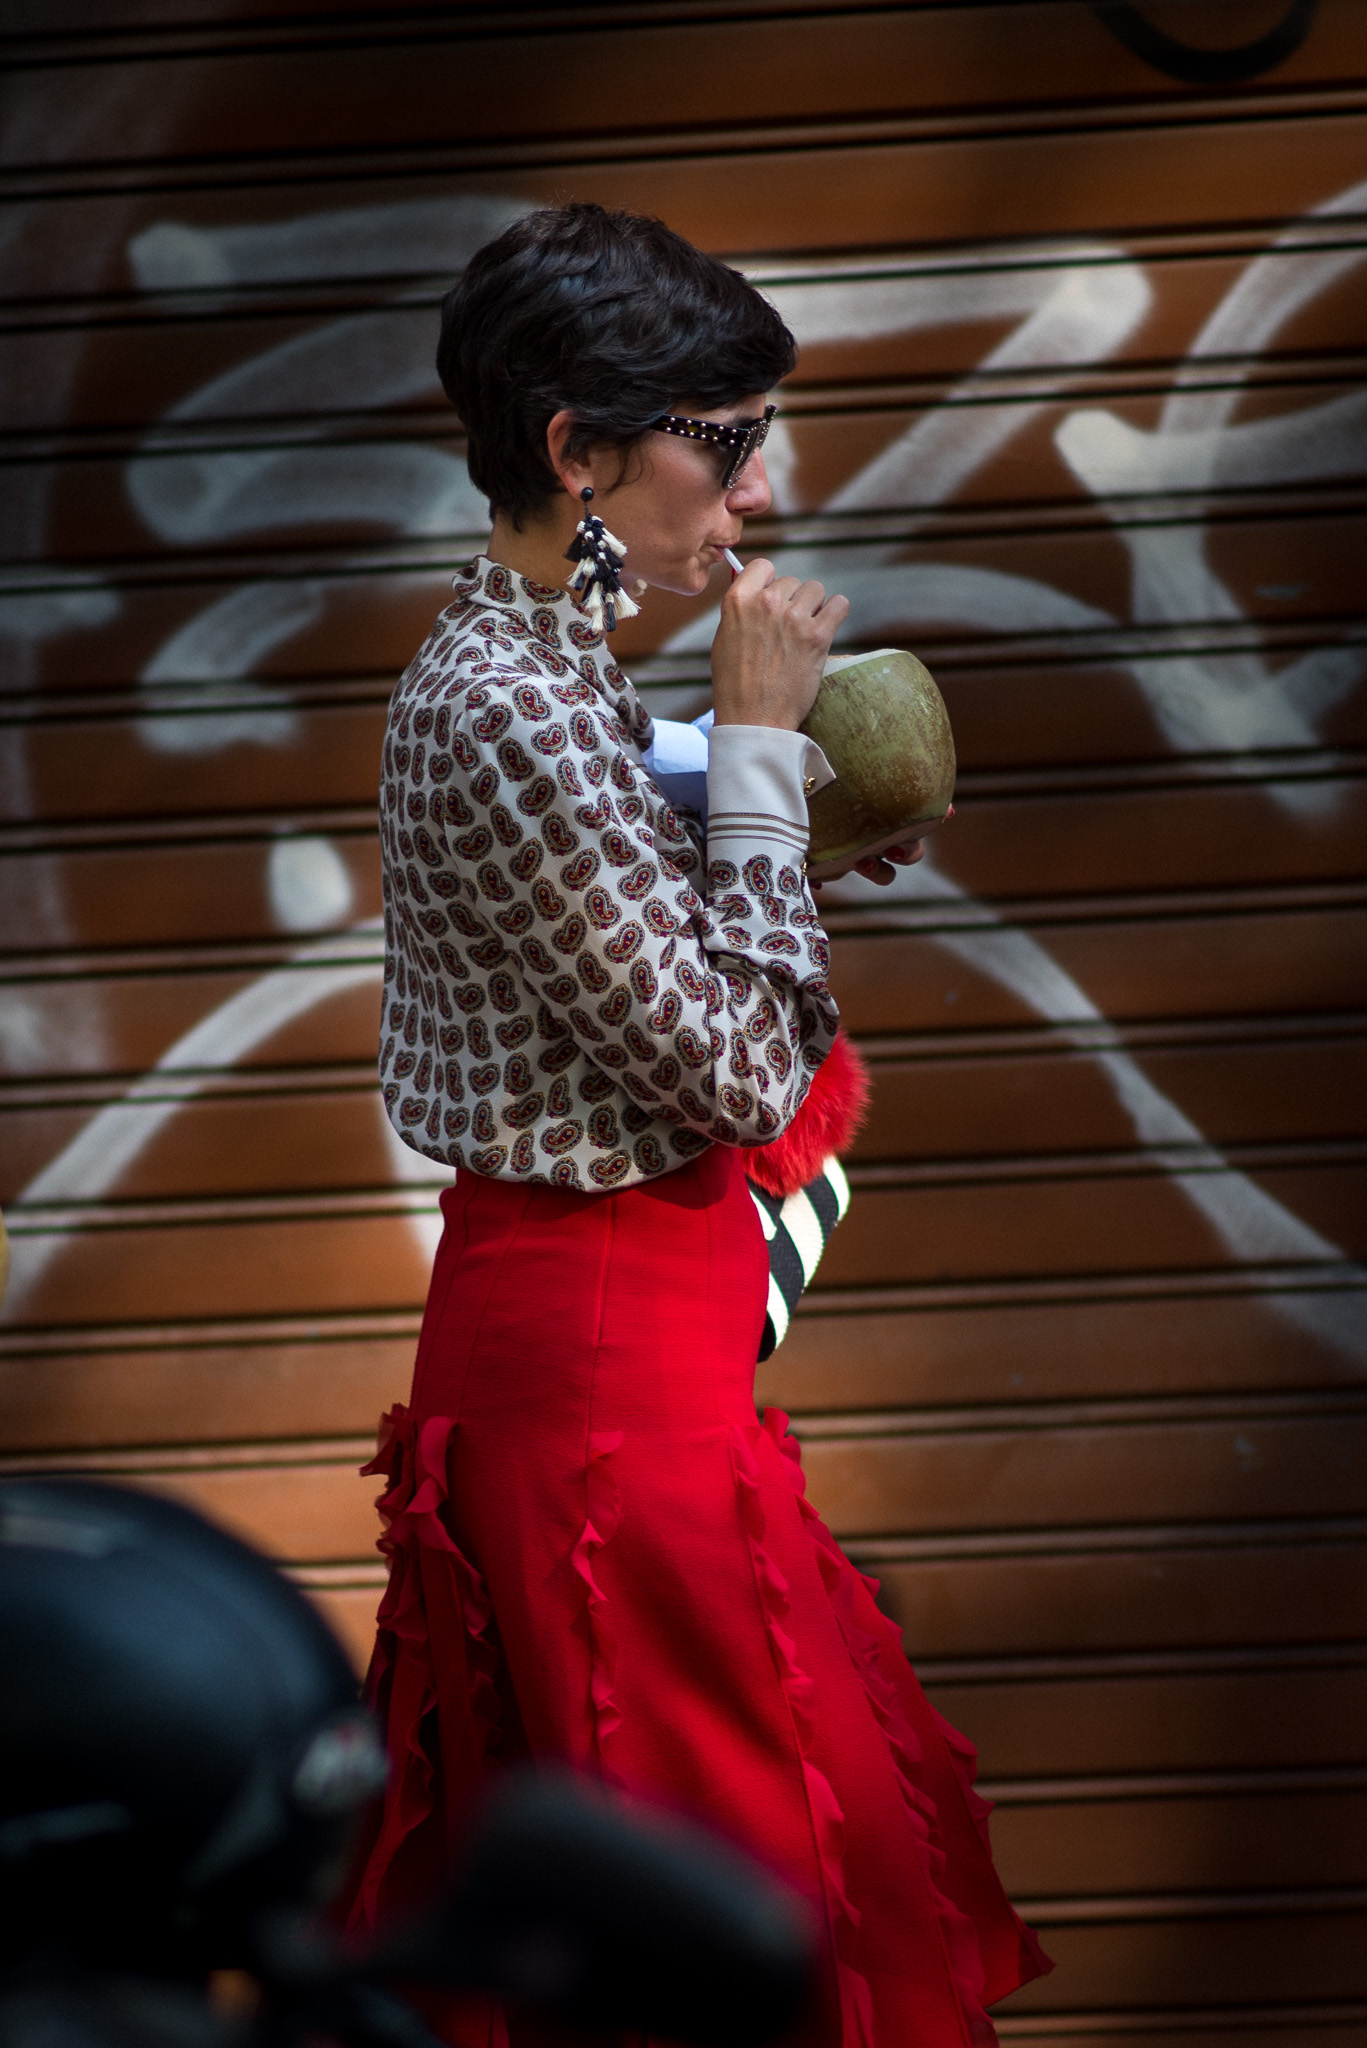 street-style_dolce-gabbana-_milan-fashion-week_sept-2016_photography-annika-lagerqvist_www-annikasomething-com-6